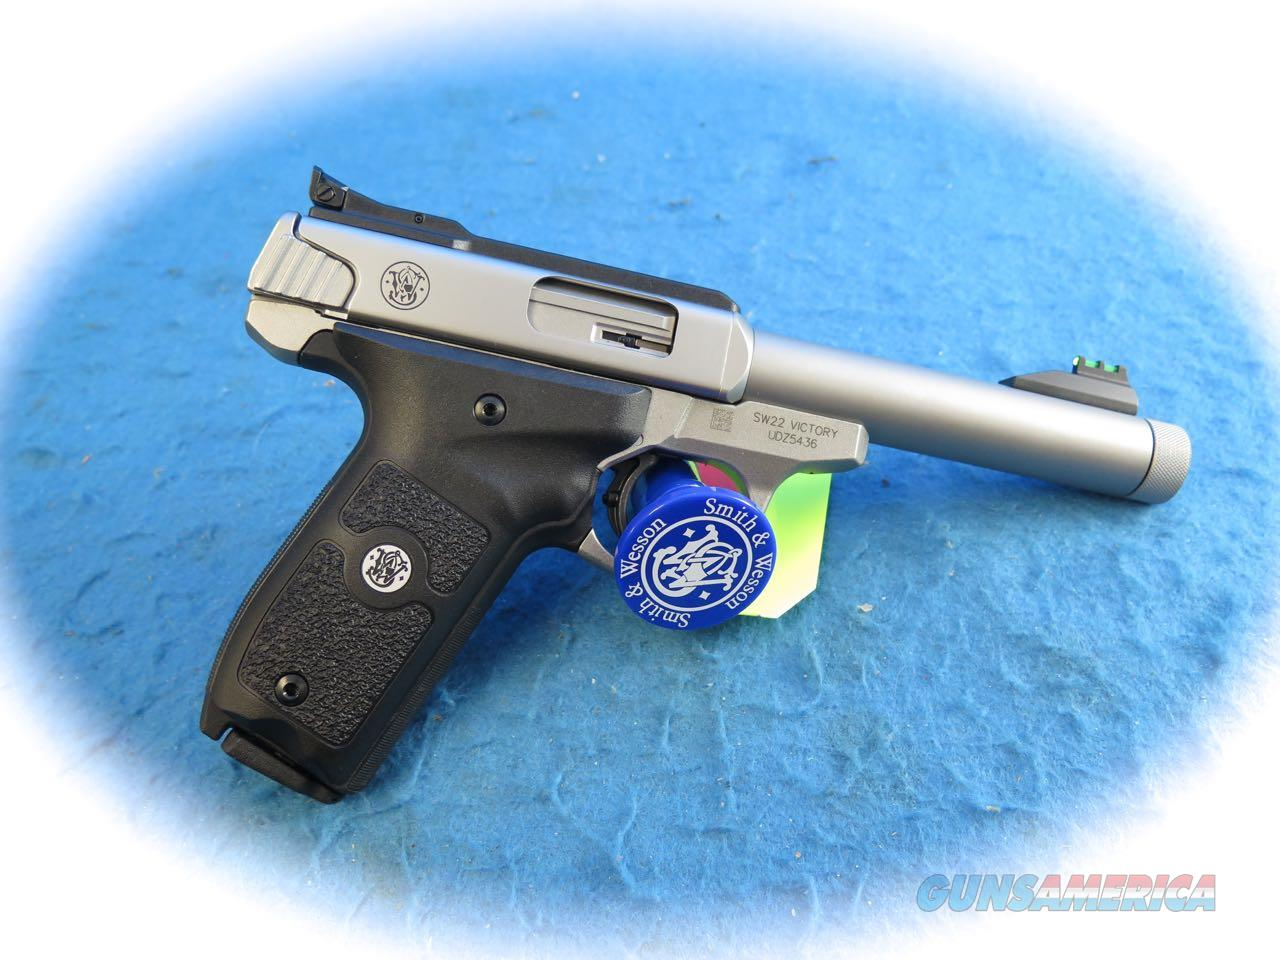 Smith & Wesson SW22 VICTORY® .22LR Pistol THREADED BARREL SKU: 10201  Guns > Pistols > Smith & Wesson Pistols - Autos > .22 Autos